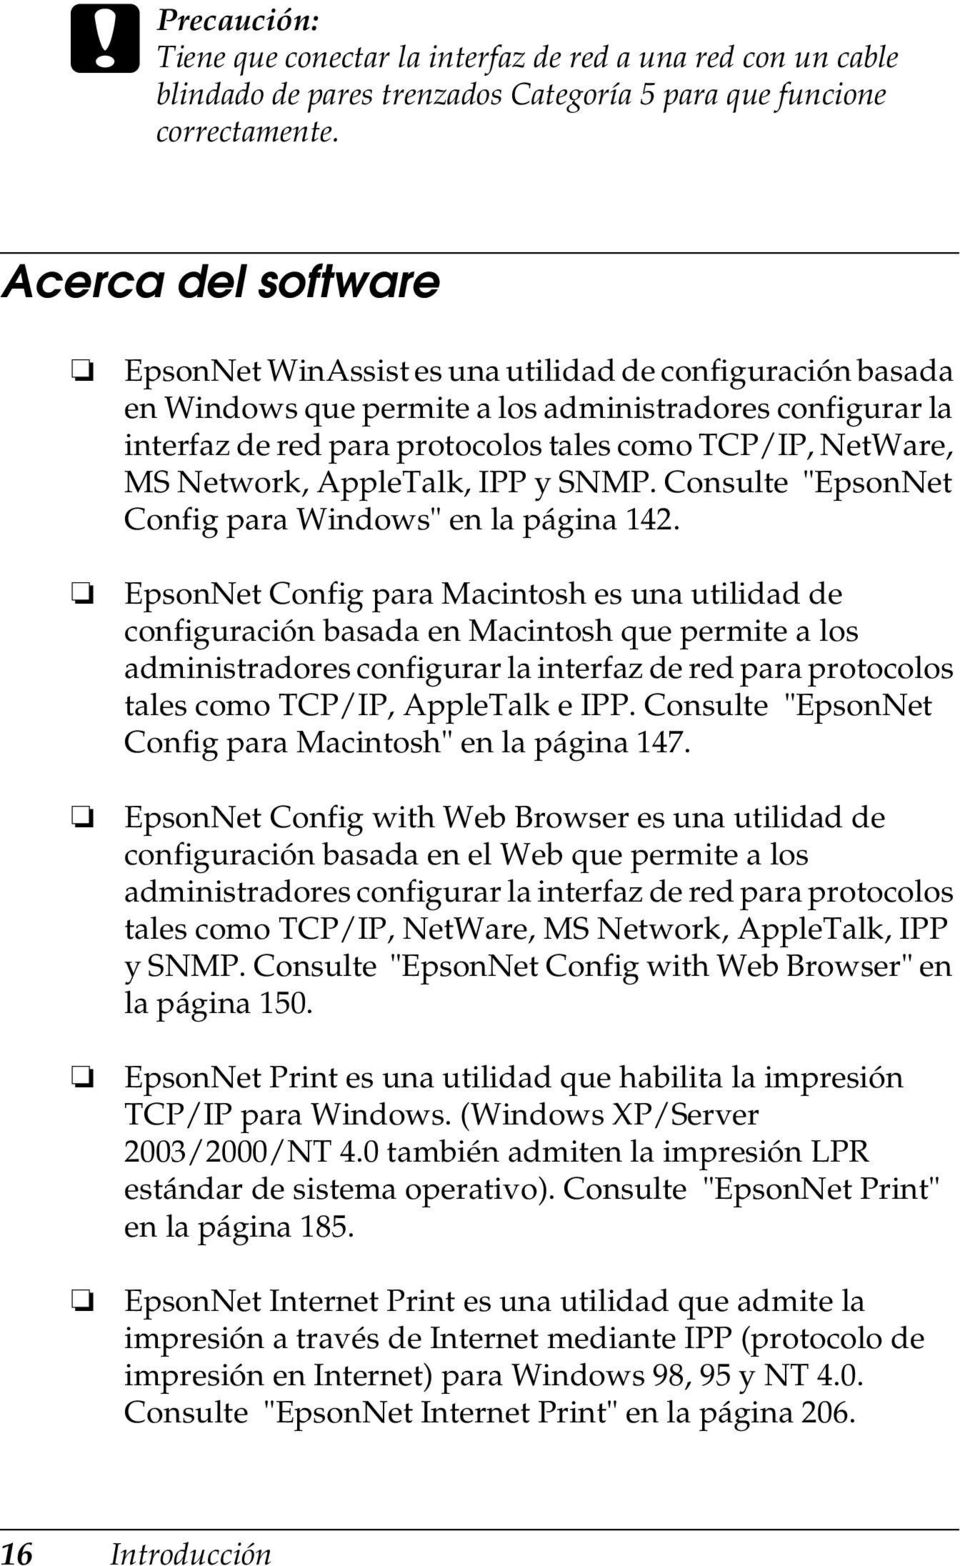 "MS Network, AppleTalk, IPP y SNMP. Consulte ""EpsonNet Config para Windows"" en la página 14."